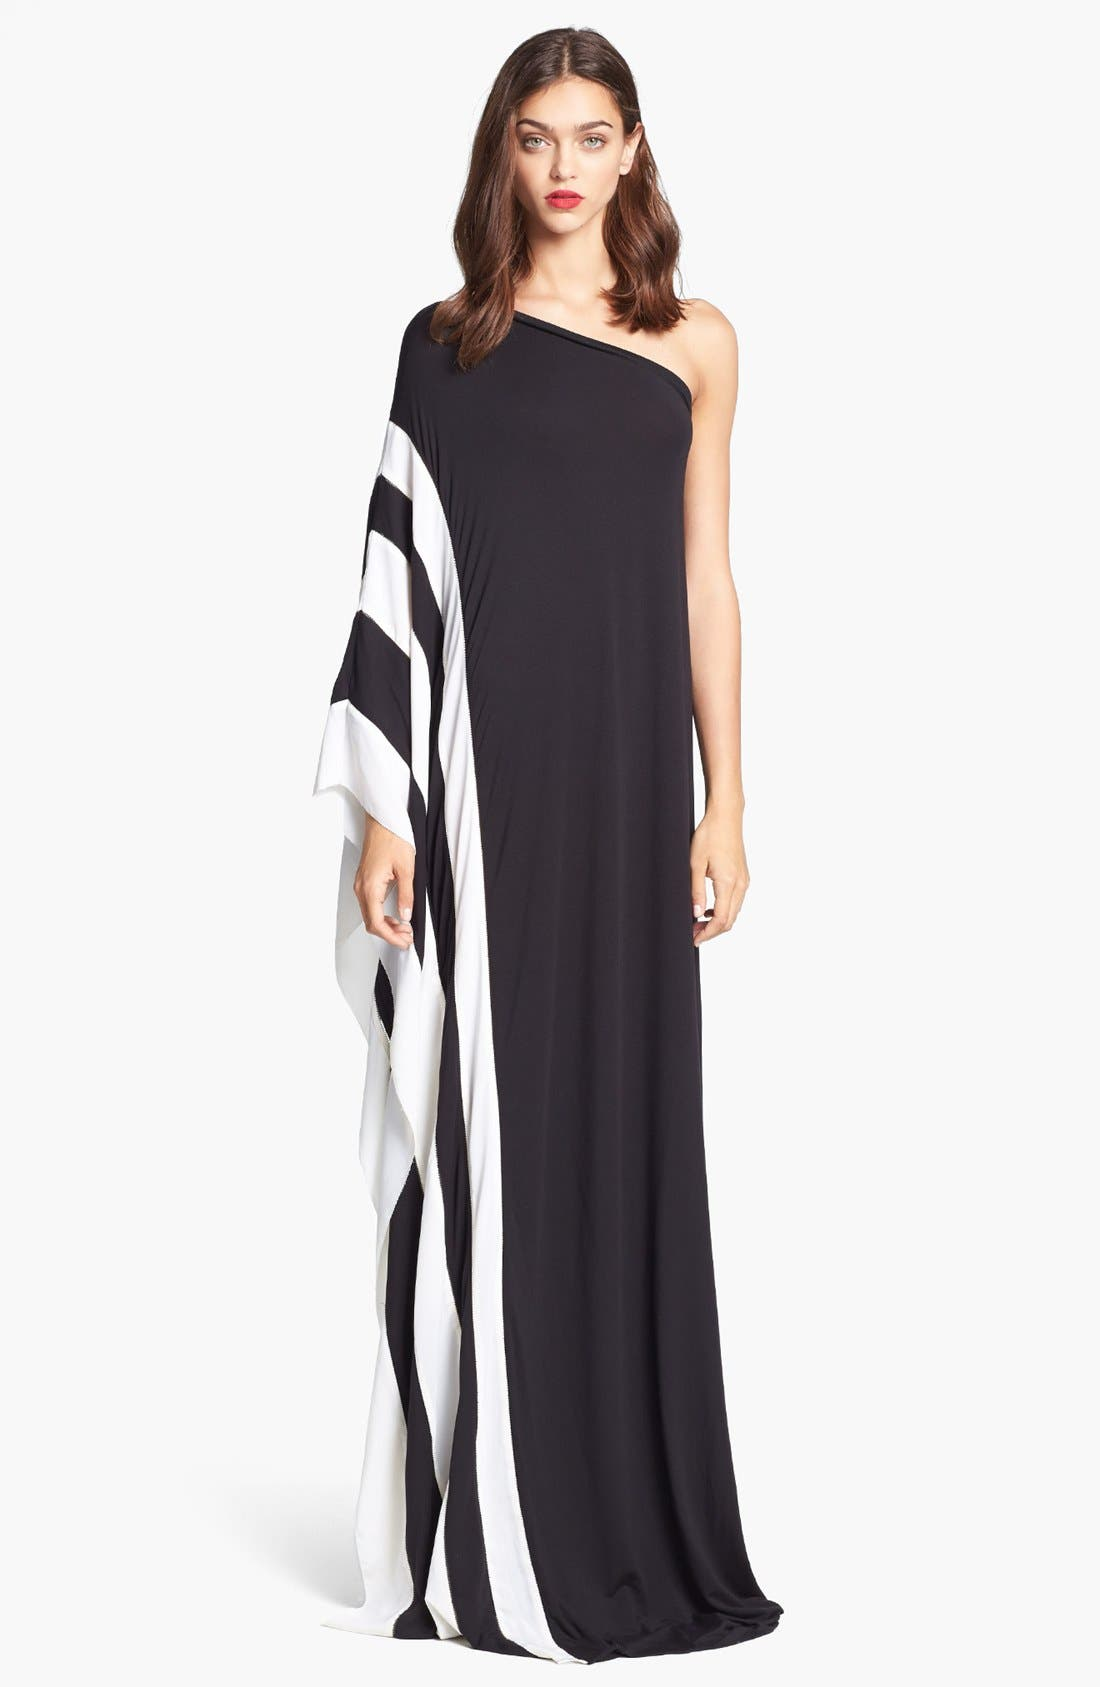 Alternate Image 1 Selected - Rachel Zoe 'Azur' One Shoulder Jersey Maxi Dress